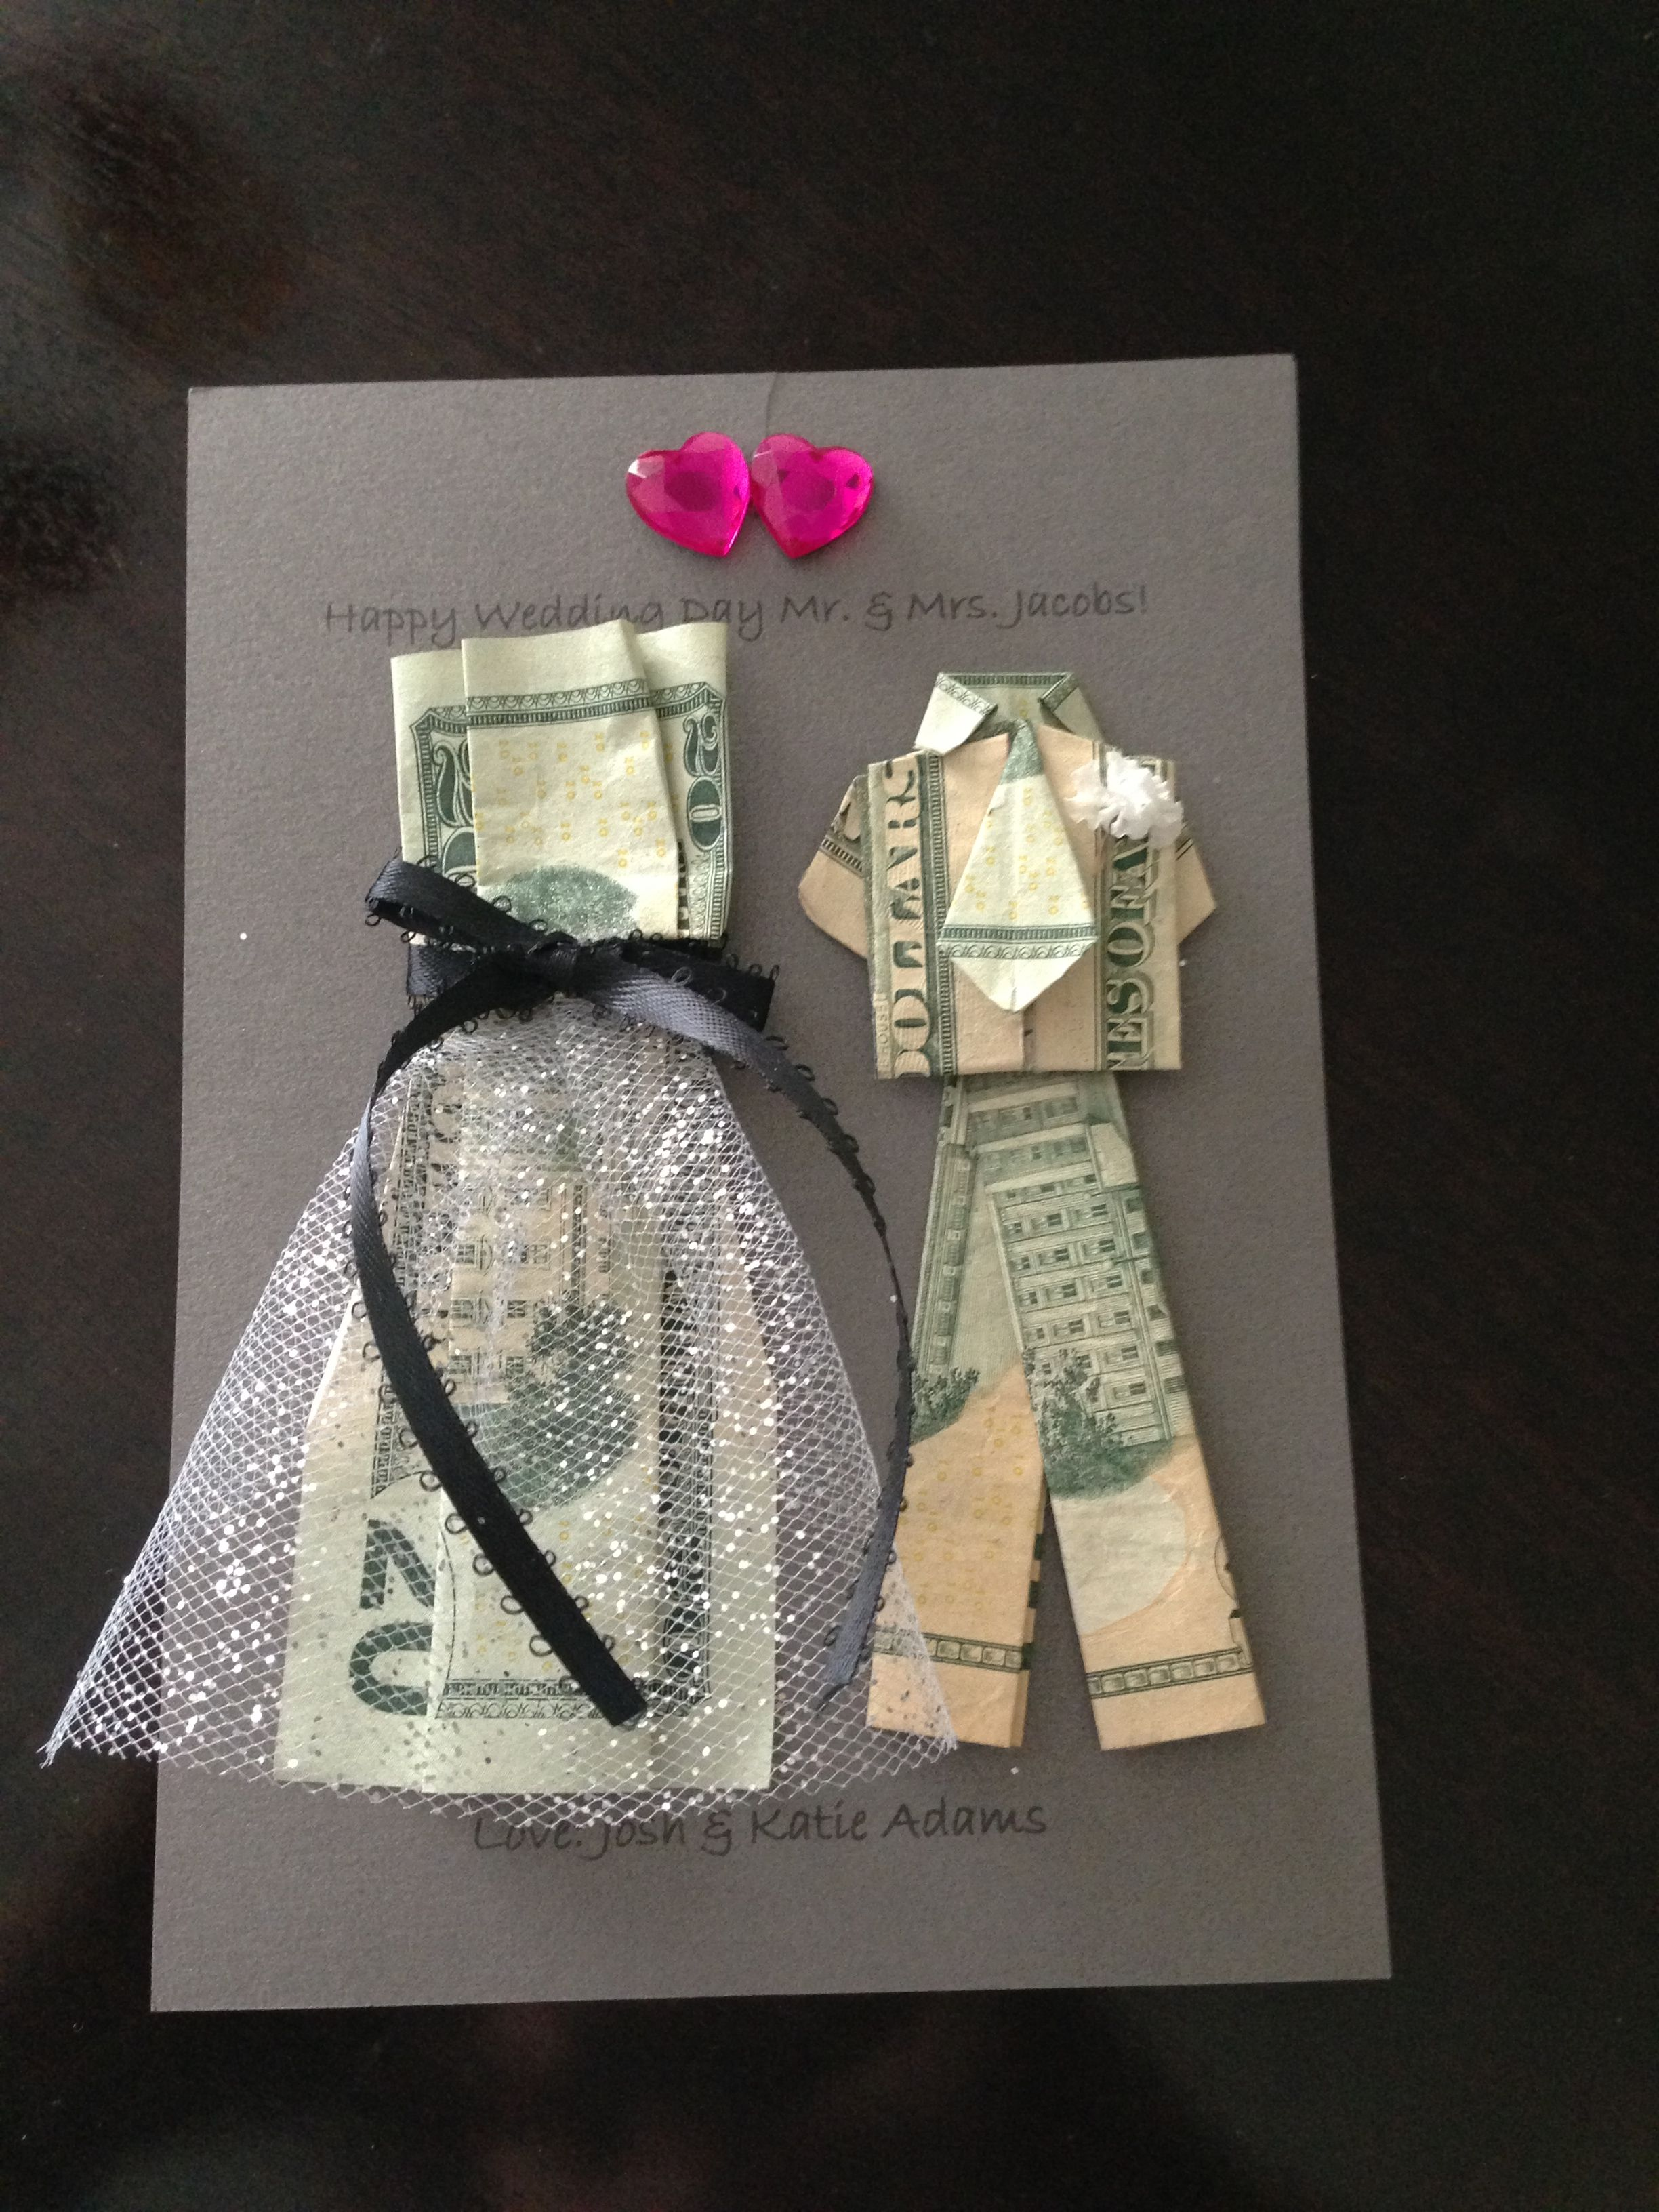 Money For Wedding Gift : Wedding Money Gifts on Pinterest Money Gift Wedding, Wedding Gift ...